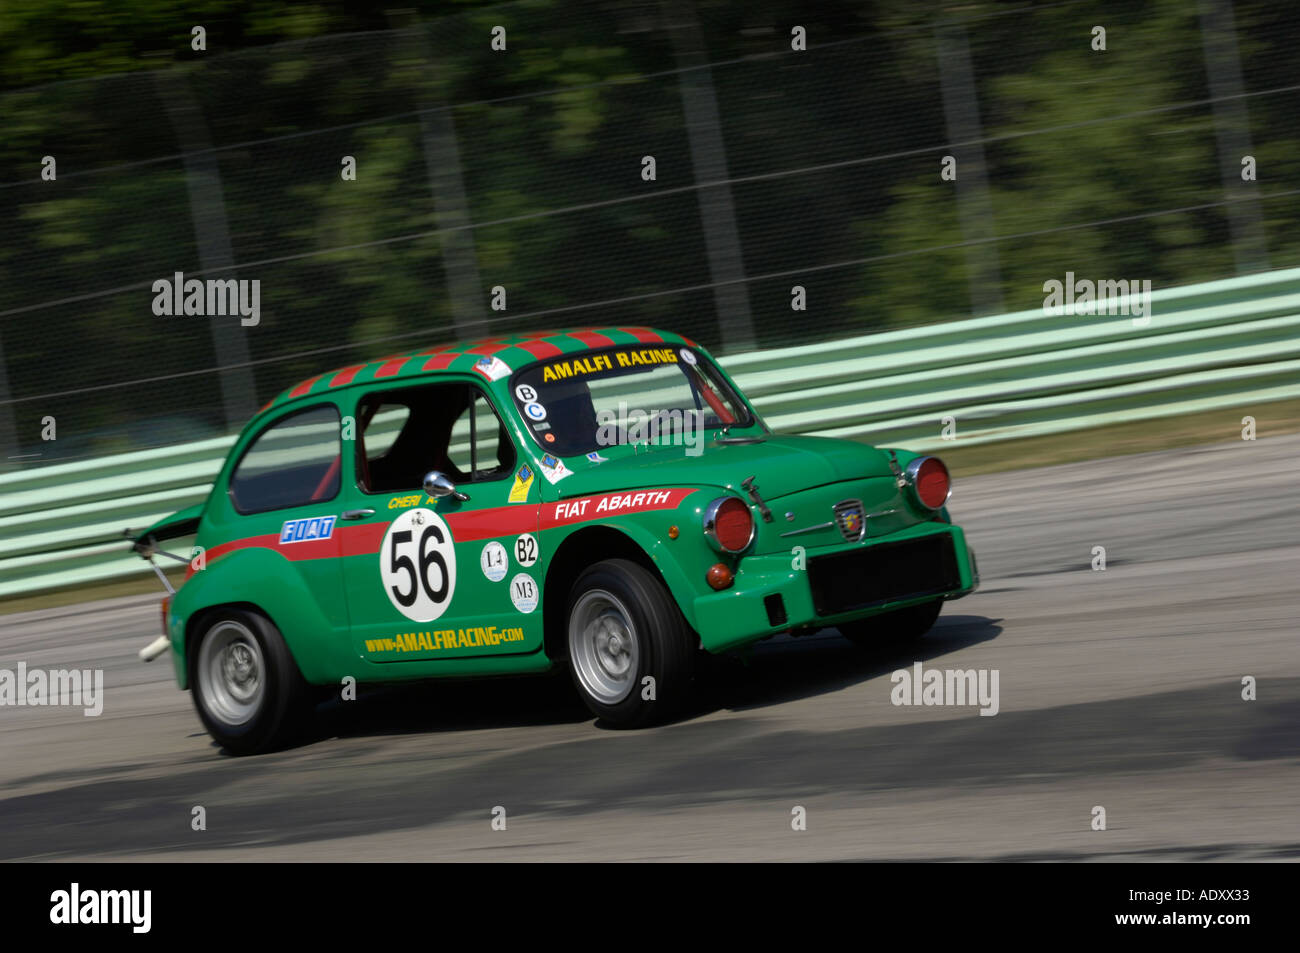 Fantastic Mini Miglia Challenge Car 2005: Fiat Racing Car Stock Photos & Fiat Racing Car Stock